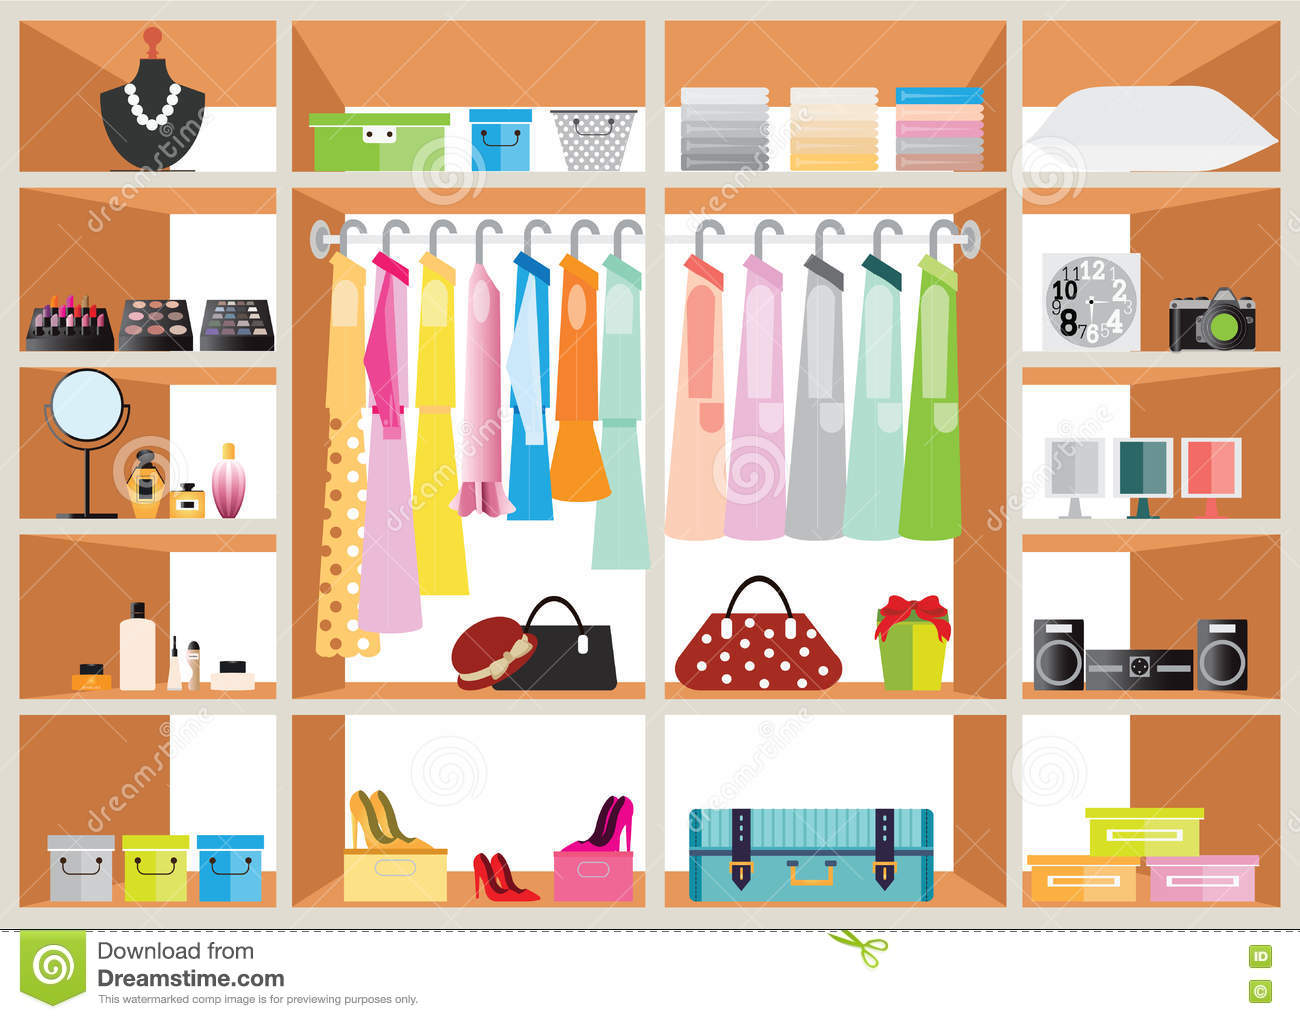 Flat Design Walk In Closet With Shelves Cartoon Vector